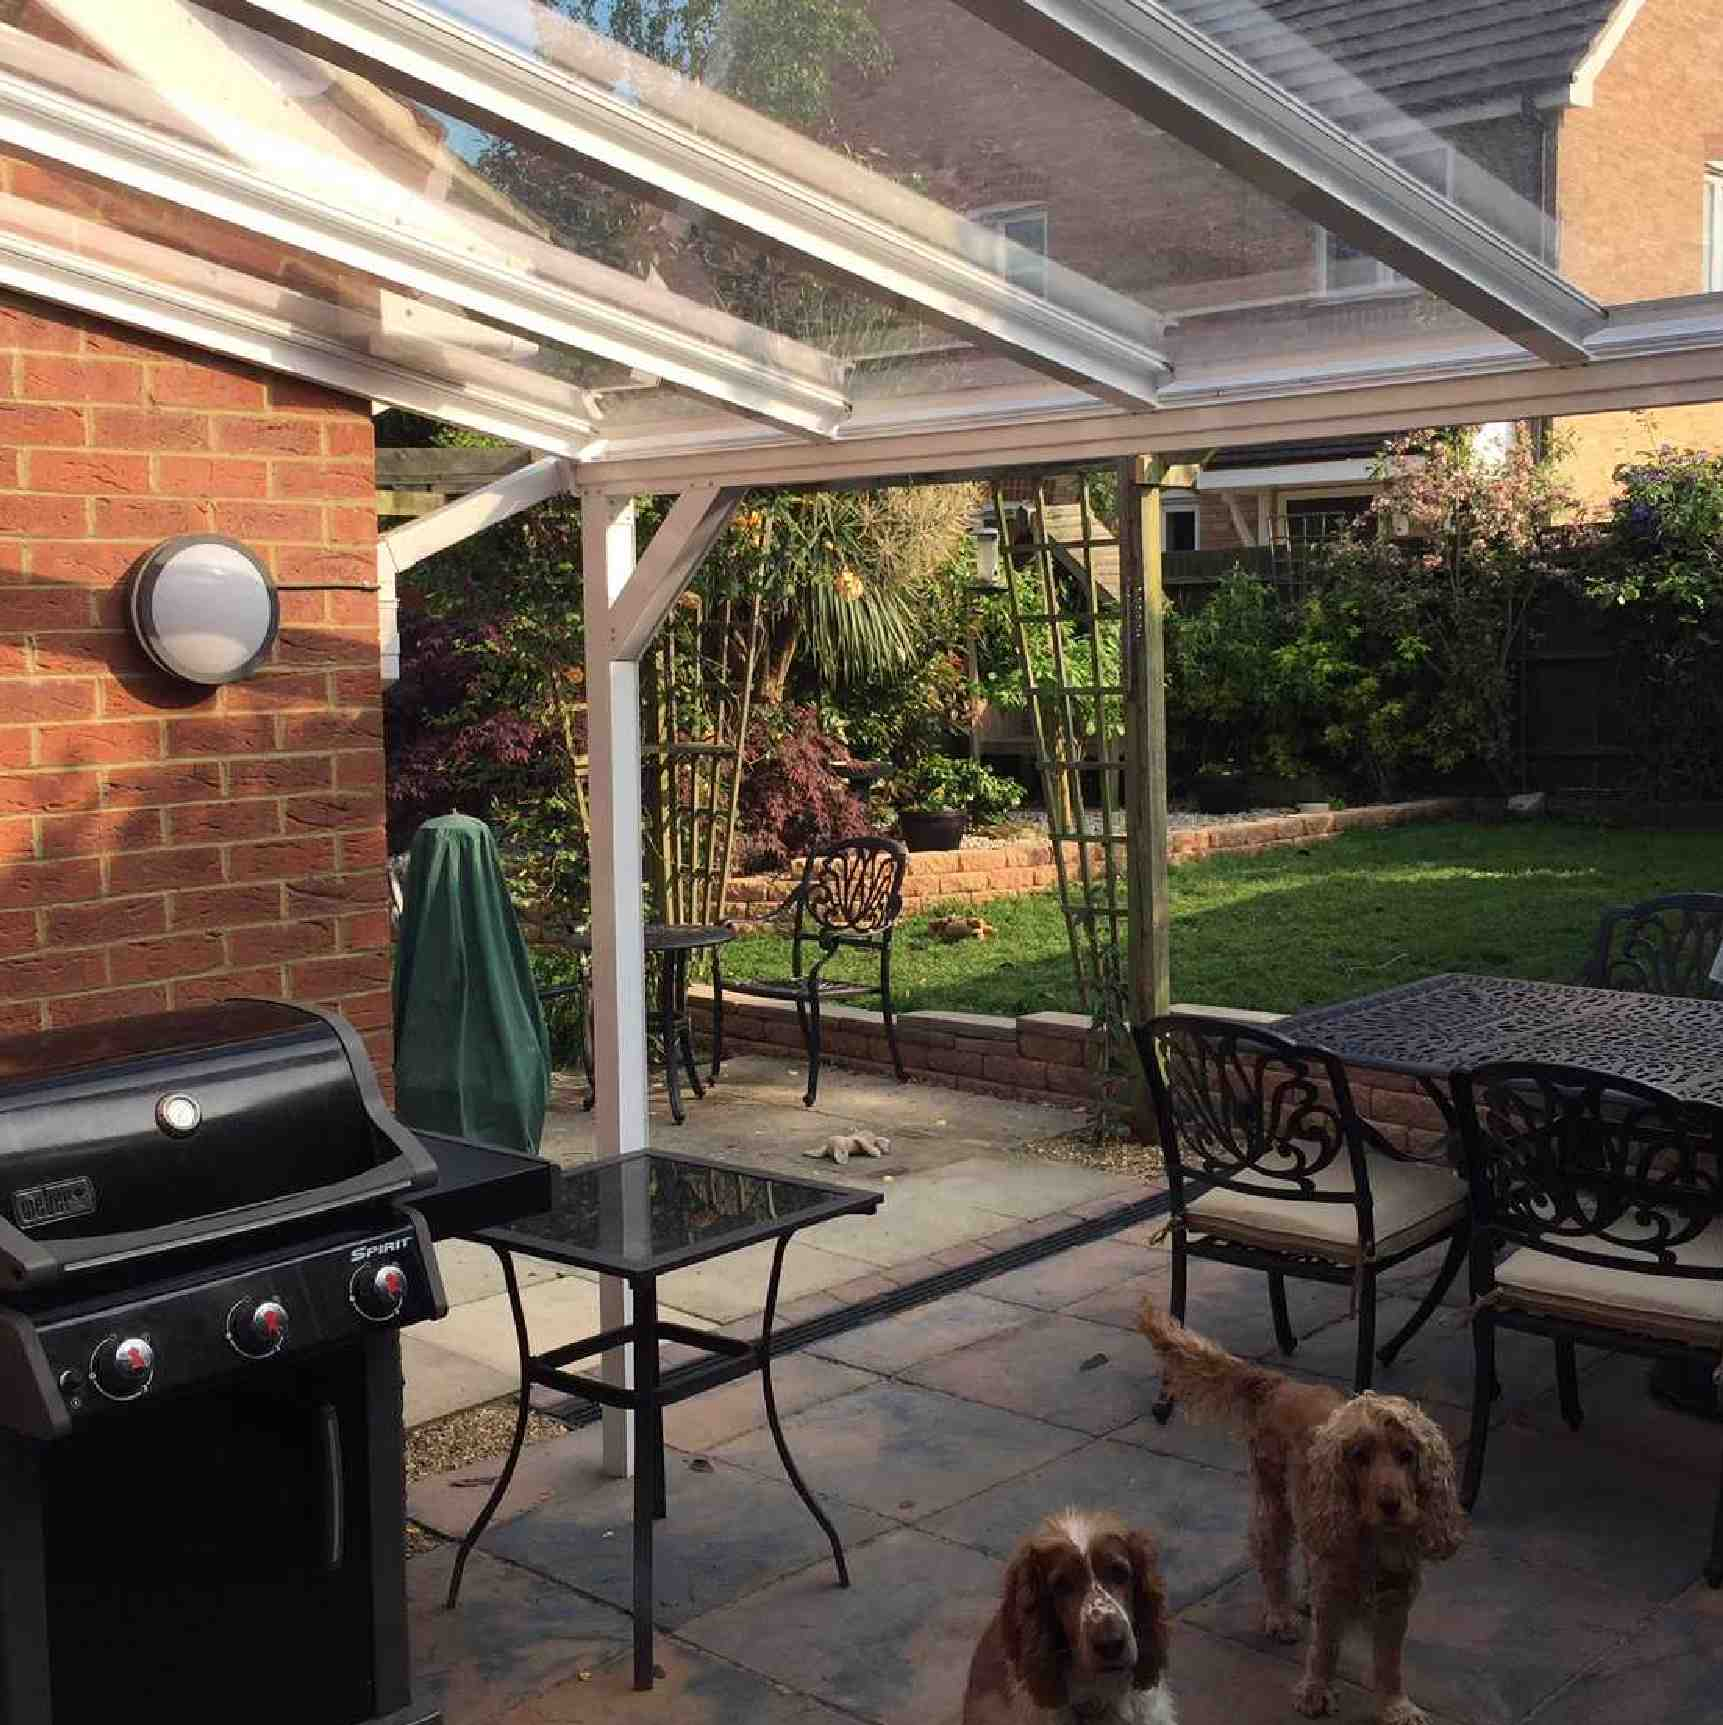 Omega Verandah with 16mm Polycarbonate Glazing - 8.4m (W) x 4.5m (P), (4) Supporting Posts